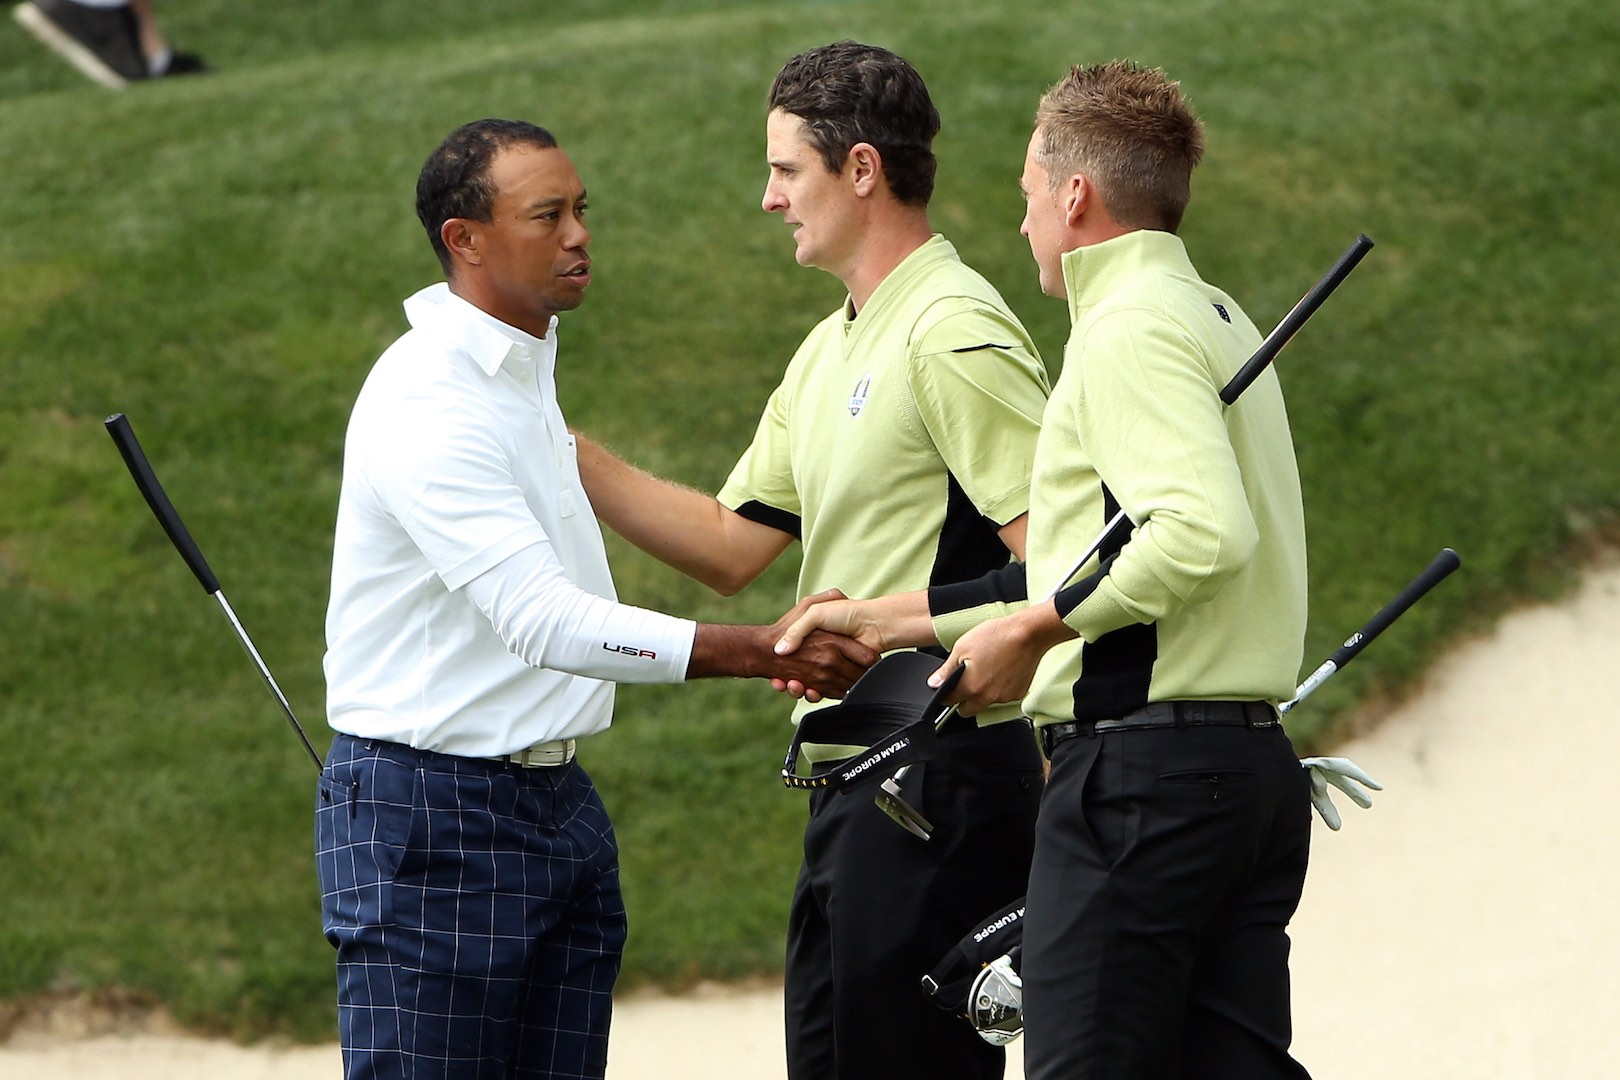 Ian Poulter backs Tiger's Ryder Cup Vice Captaincy